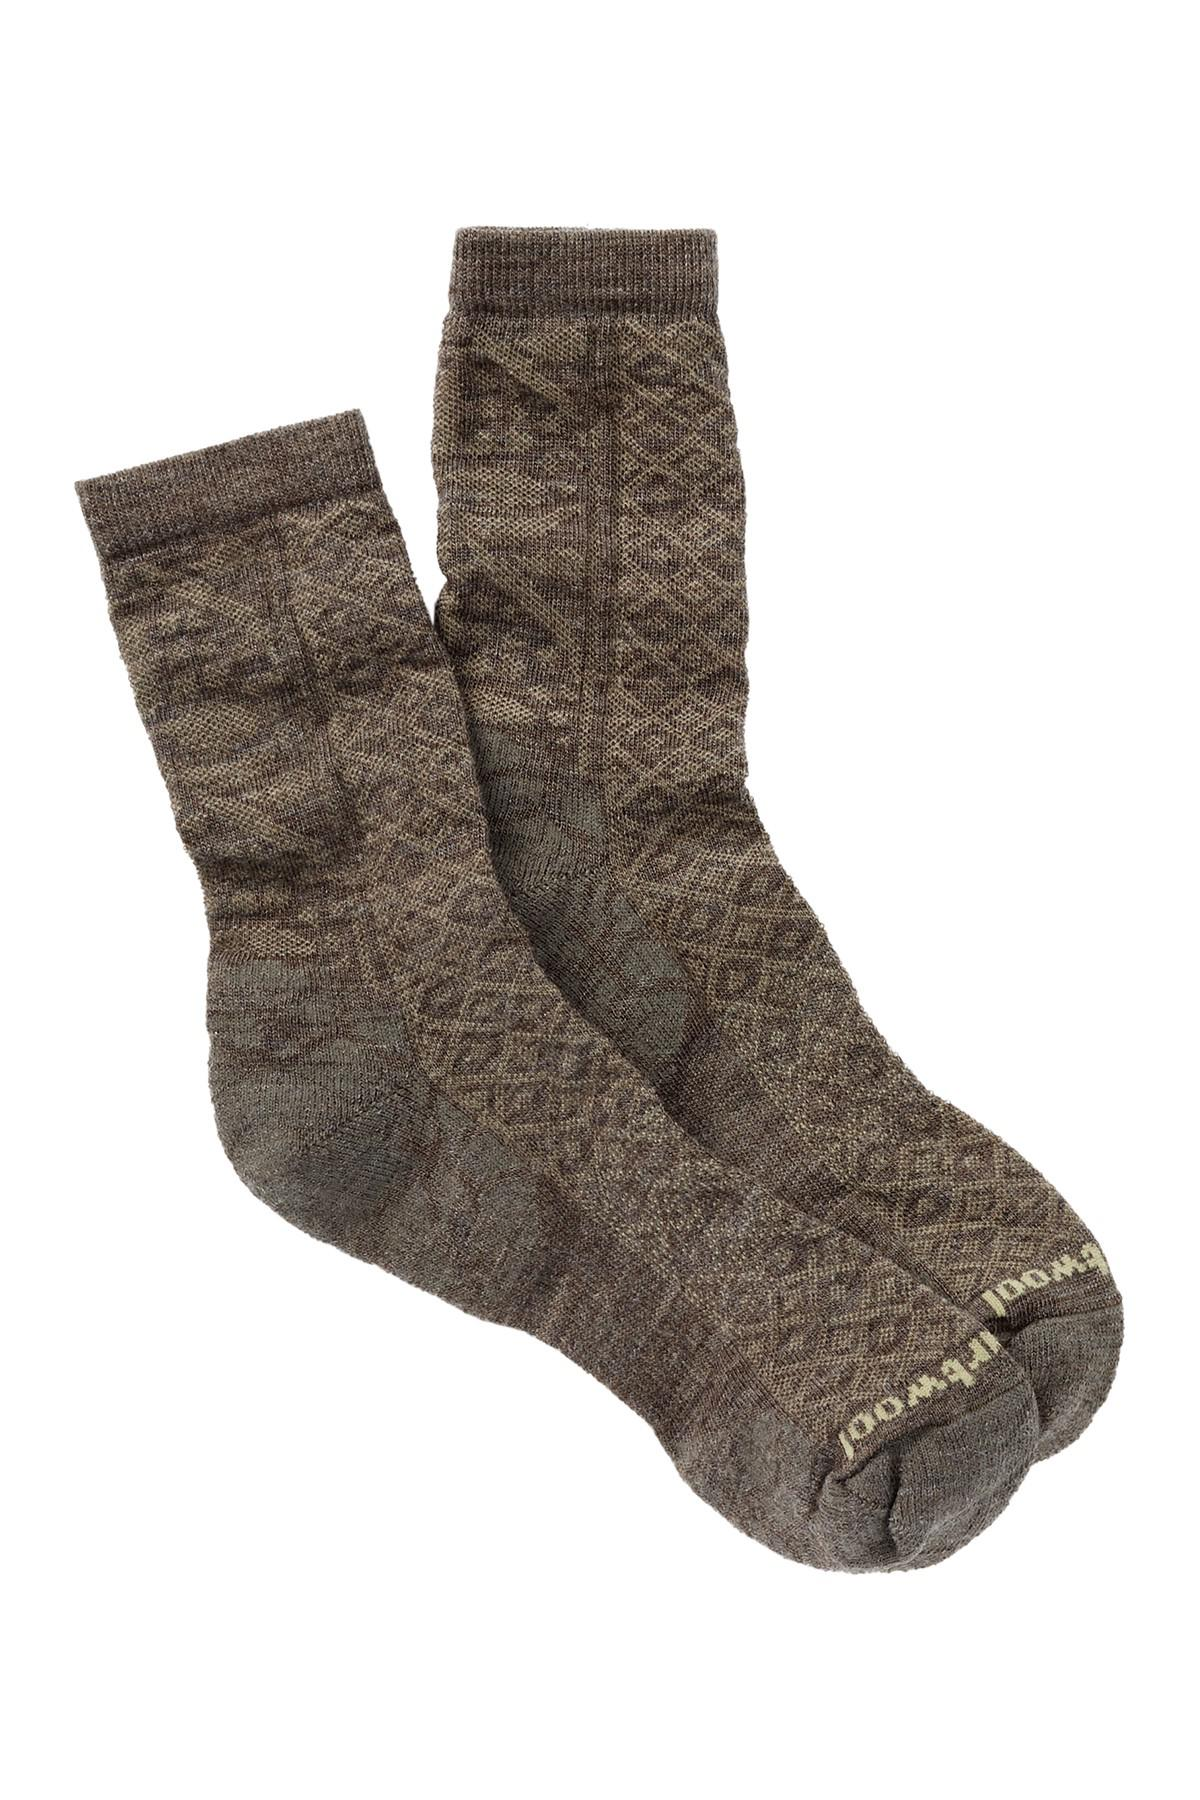 7694cacfc9bd1 Smartwool - Brown Lily Pond Crew Socks - Lyst. View fullscreen